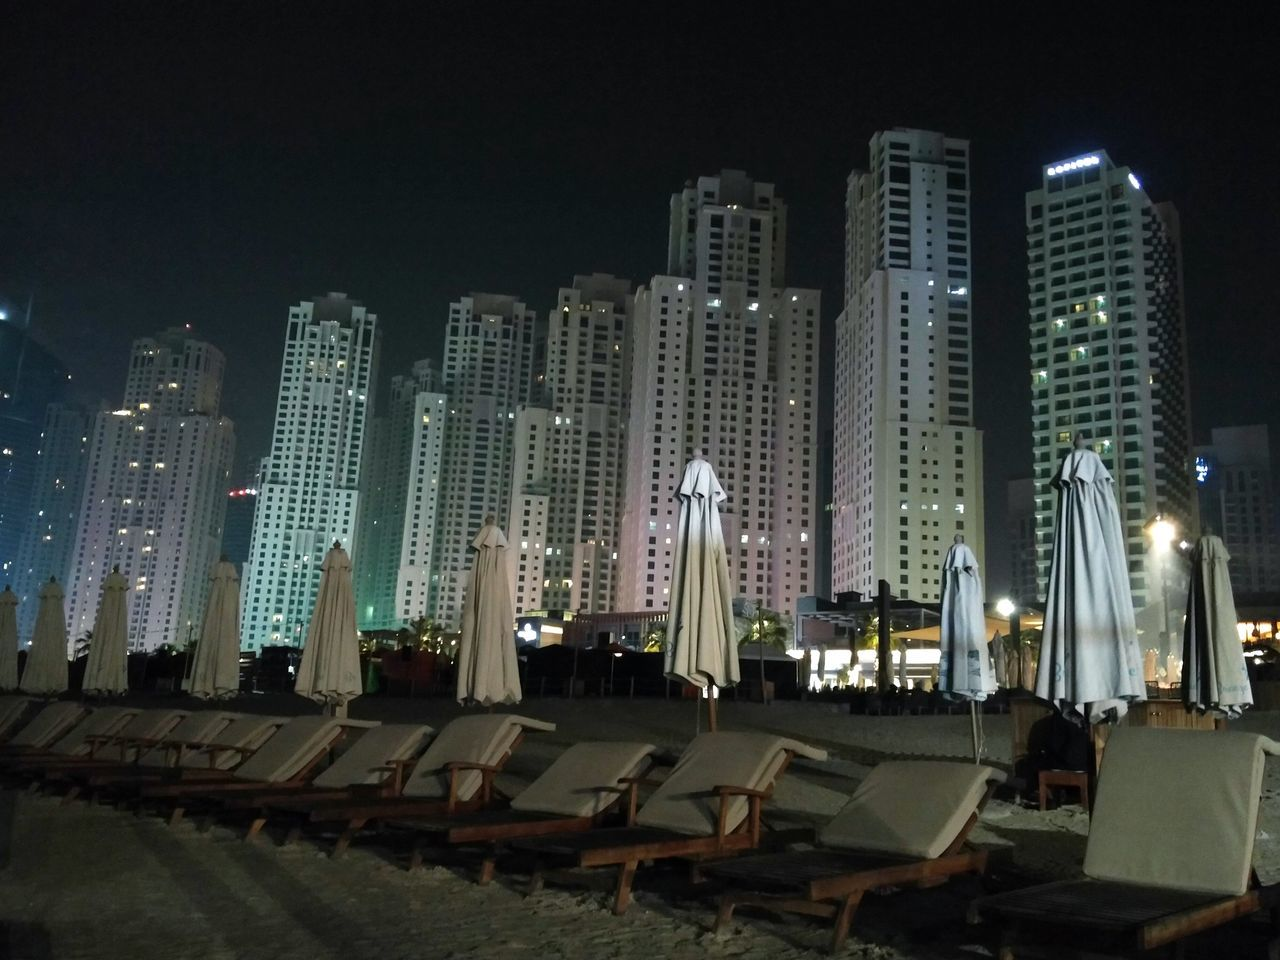 Night Urban Skyline Skyscraper City Building Exterior Architecture Illuminated Business Finance And Industry Outdoors Sky Cityscape Transportation No People Futuristic City Life Built Structure Downtown District Modern Office Building Exterior Dubai Dubaimarinawalk Beachatnight Parasols